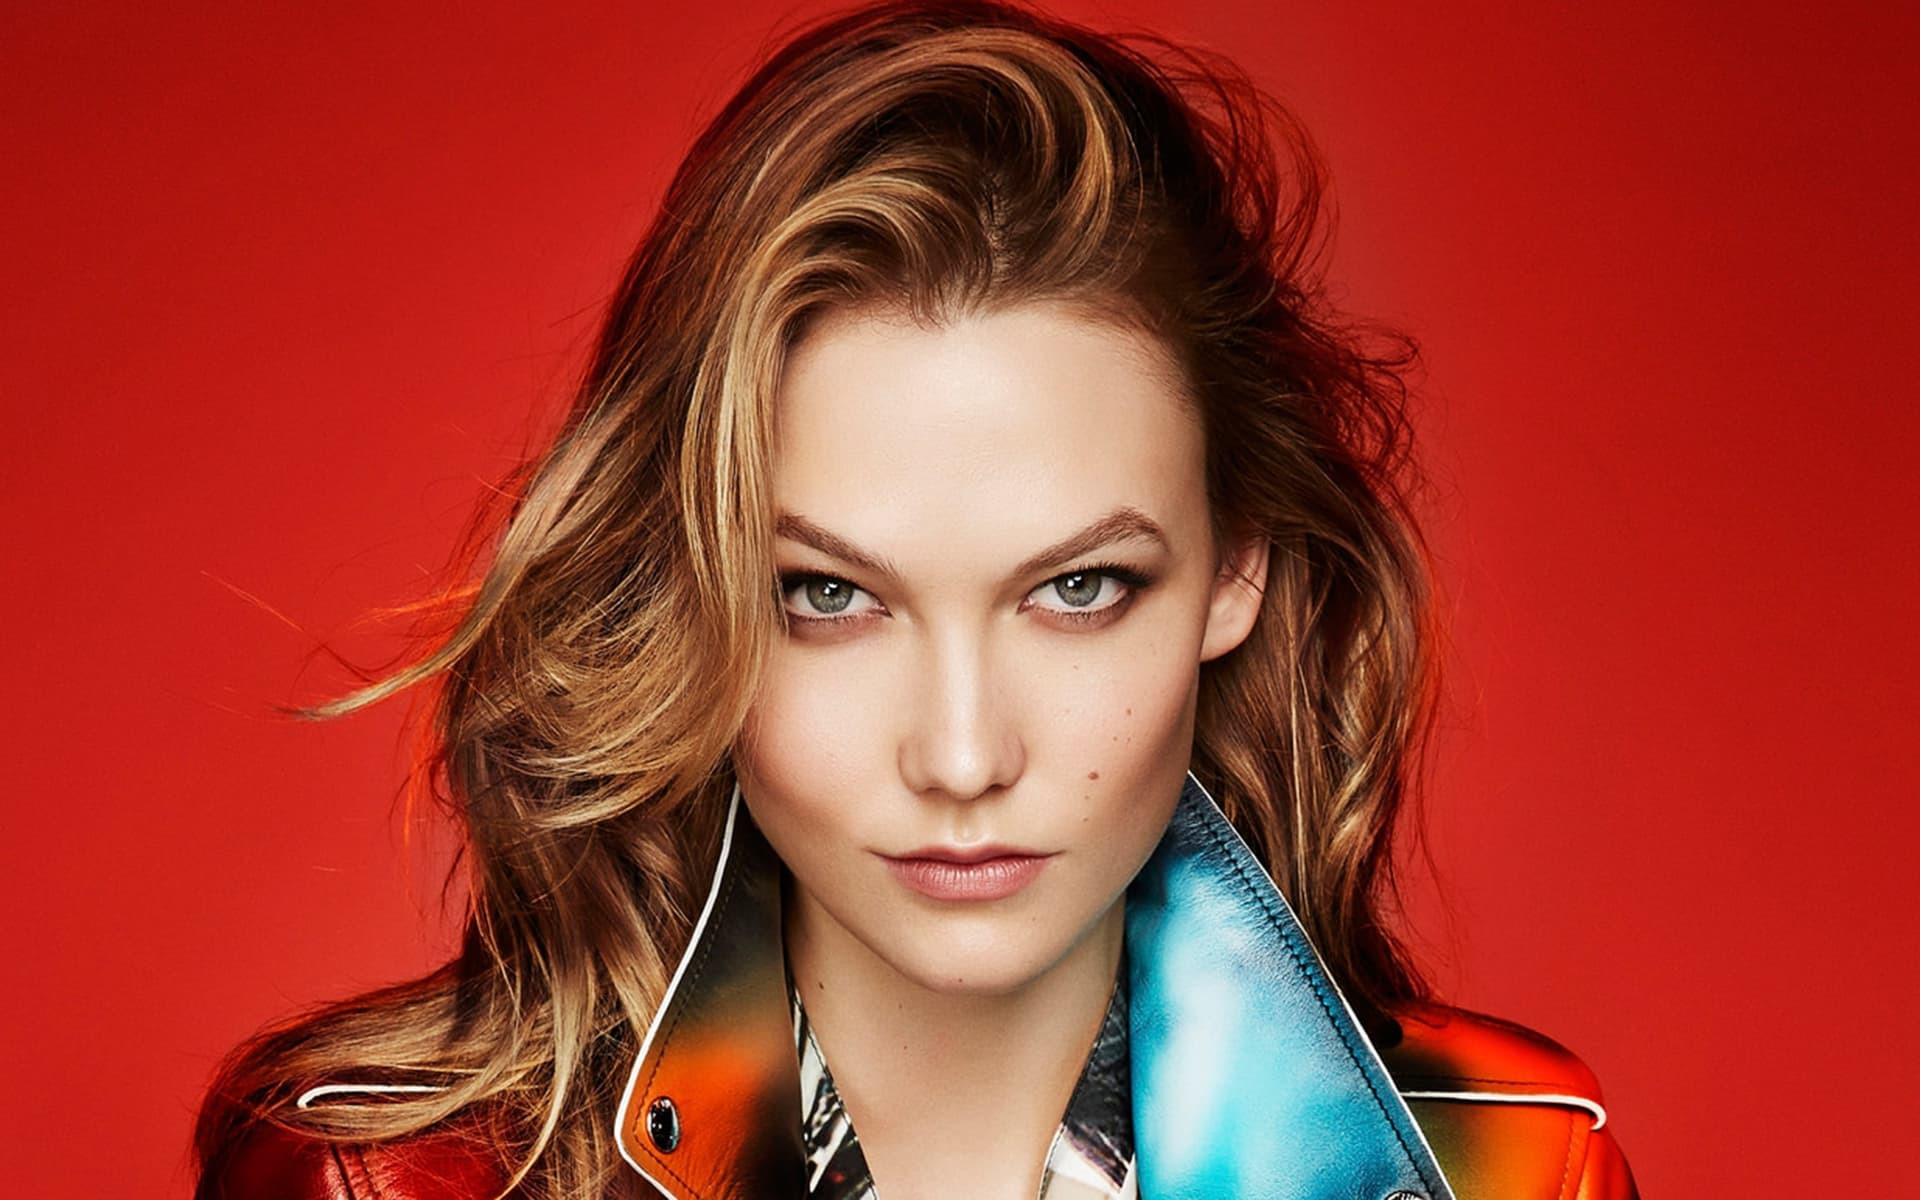 karlie kloss wallpapers images photos pictures backgrounds. Black Bedroom Furniture Sets. Home Design Ideas